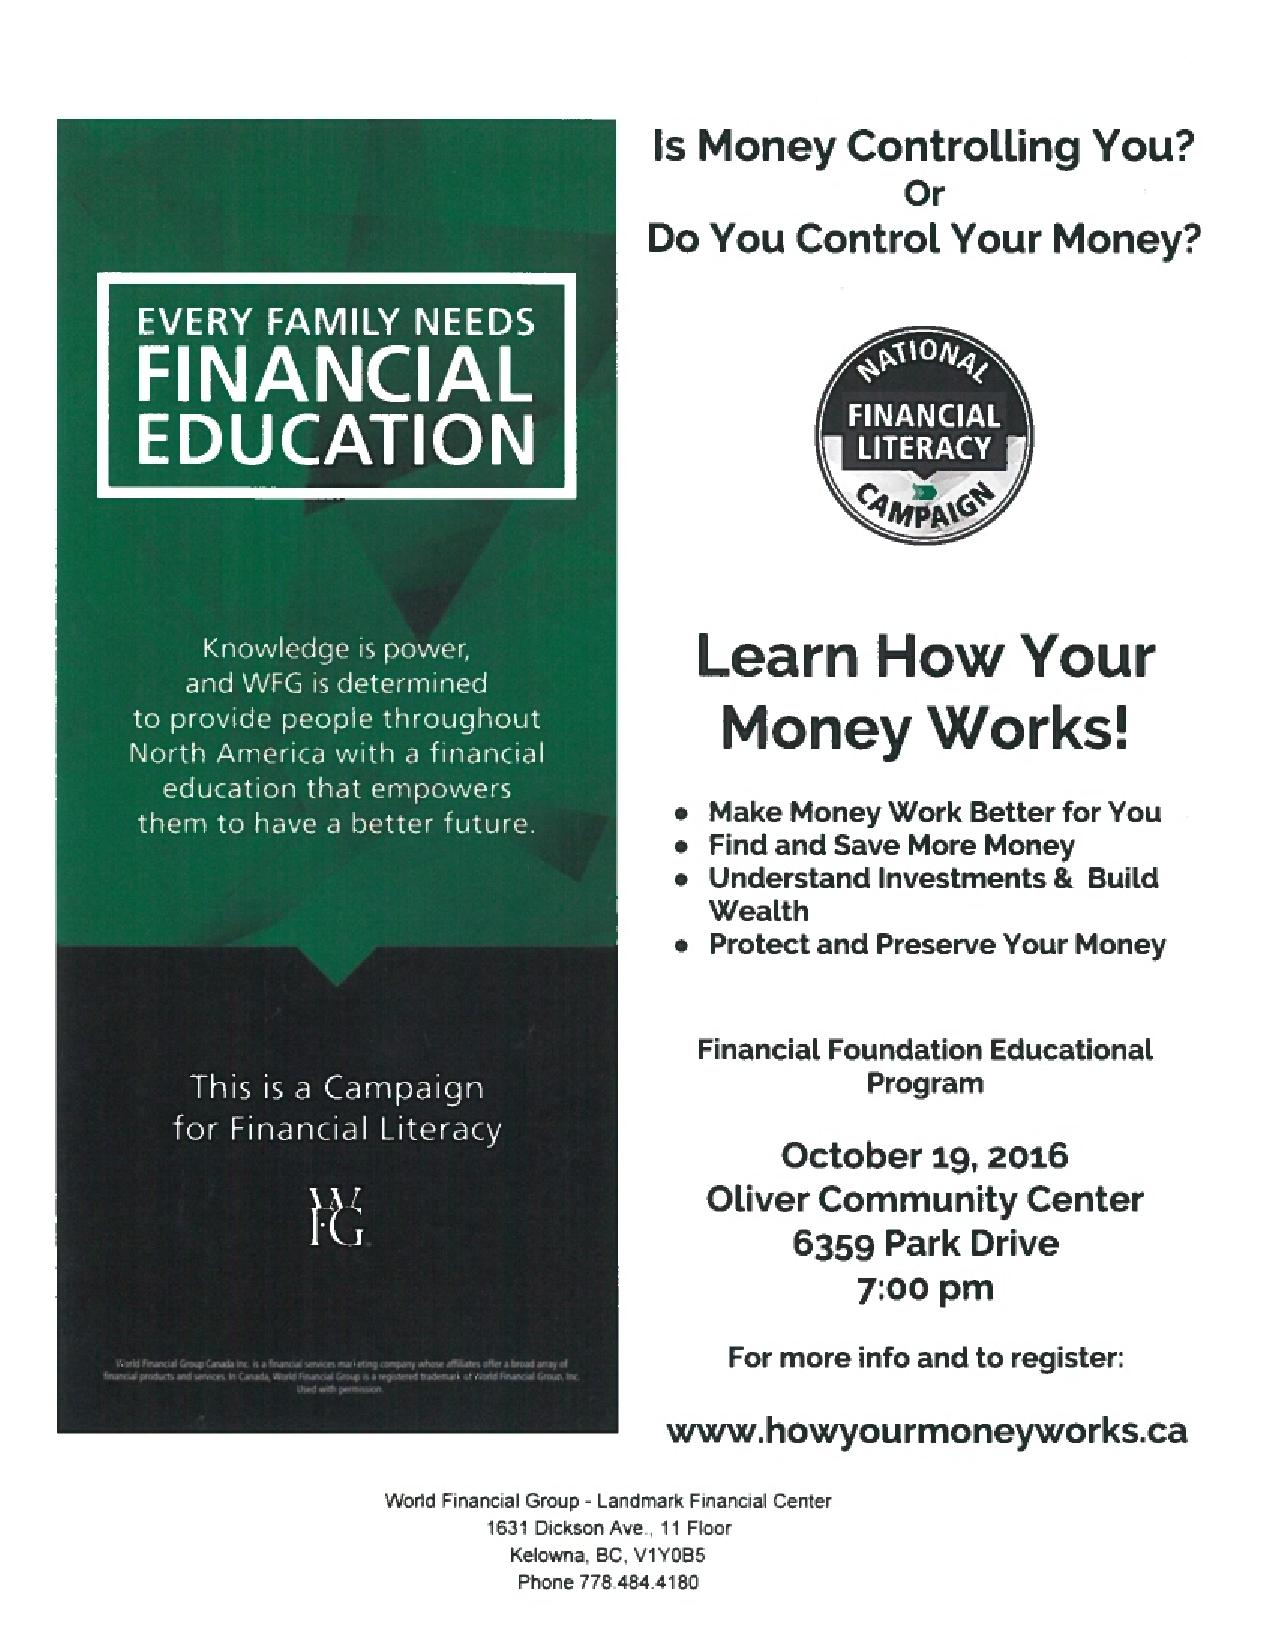 National Financial Literacy Campaign-page-001.jpg